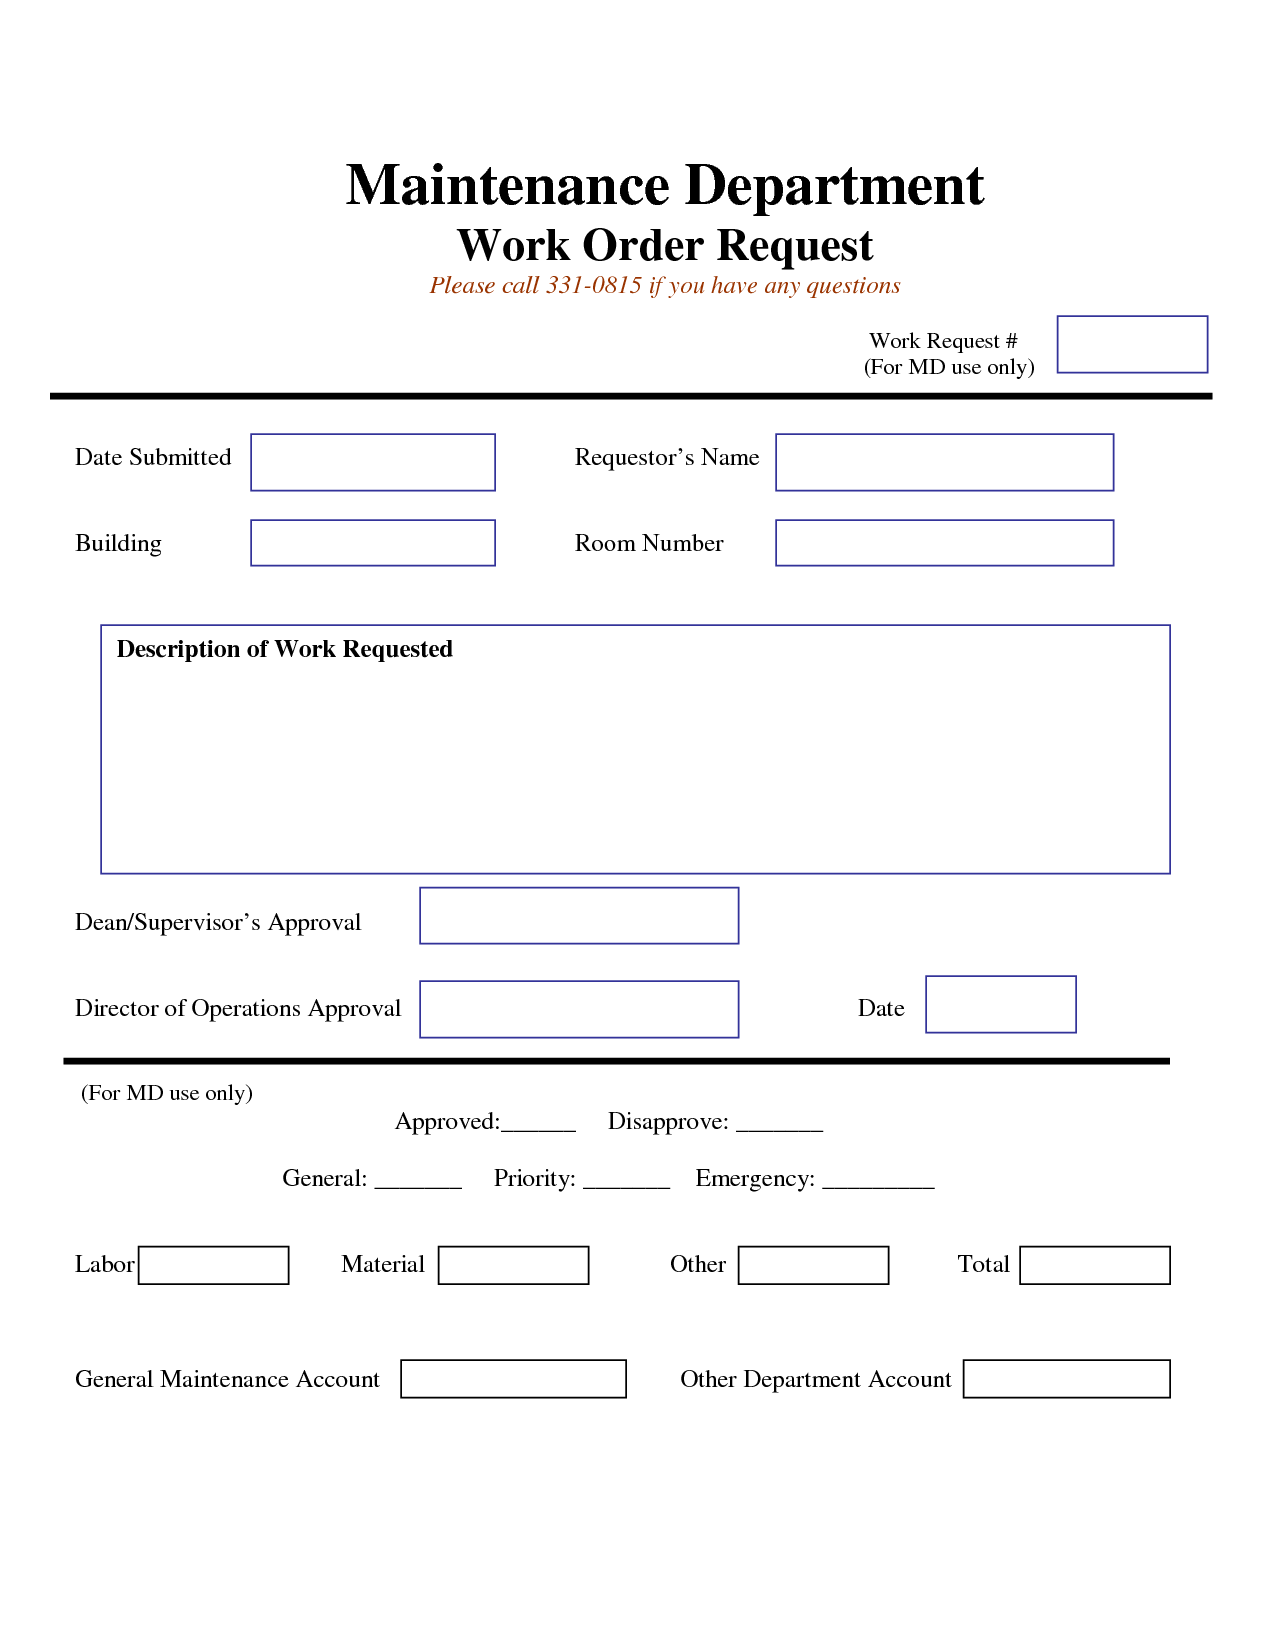 work request form | Maintenance Work Order Request Form | work